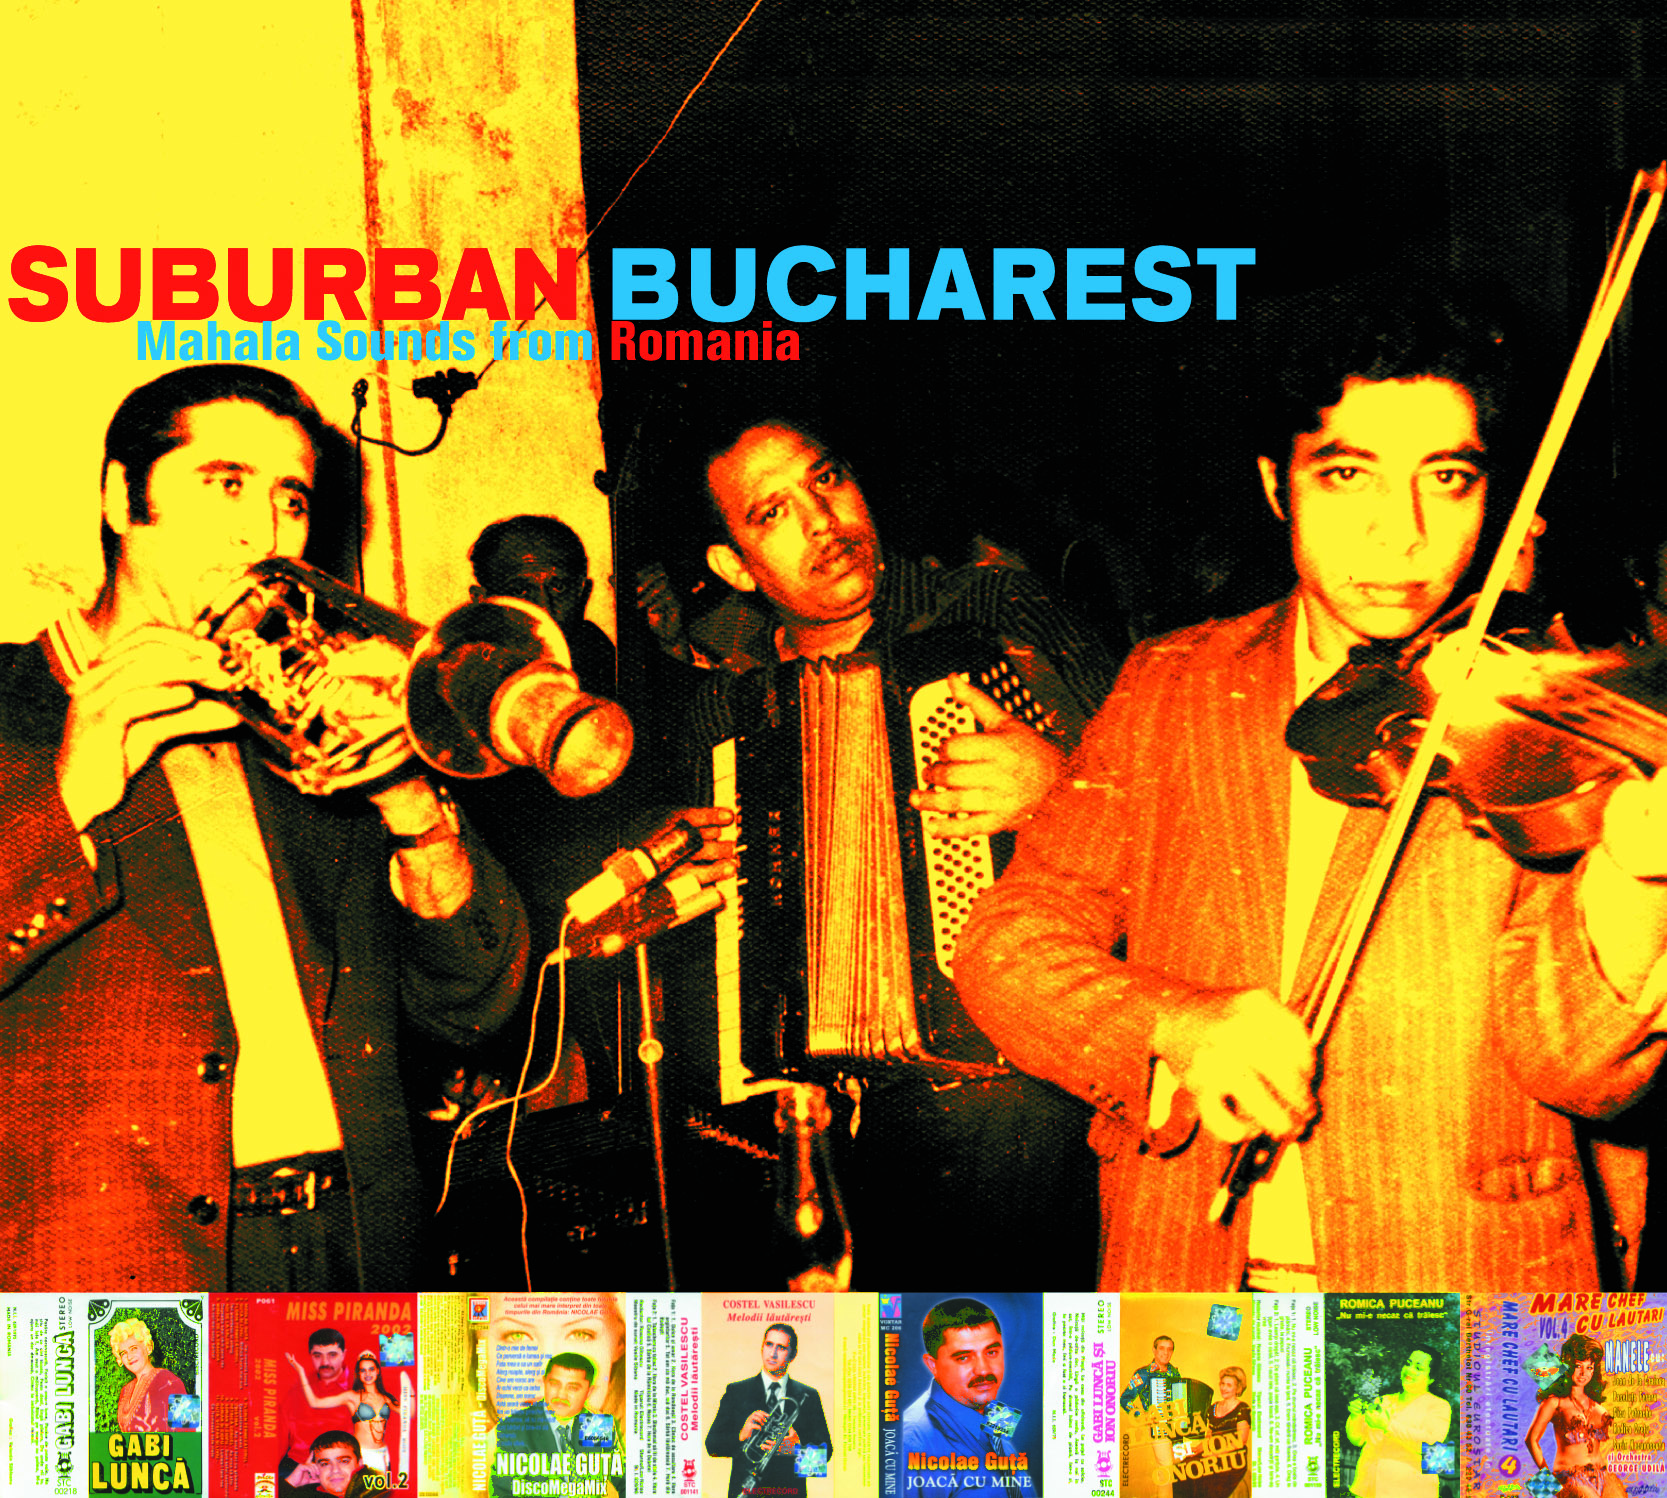 Suburban Bucharest - Mahala Sounds from Romania